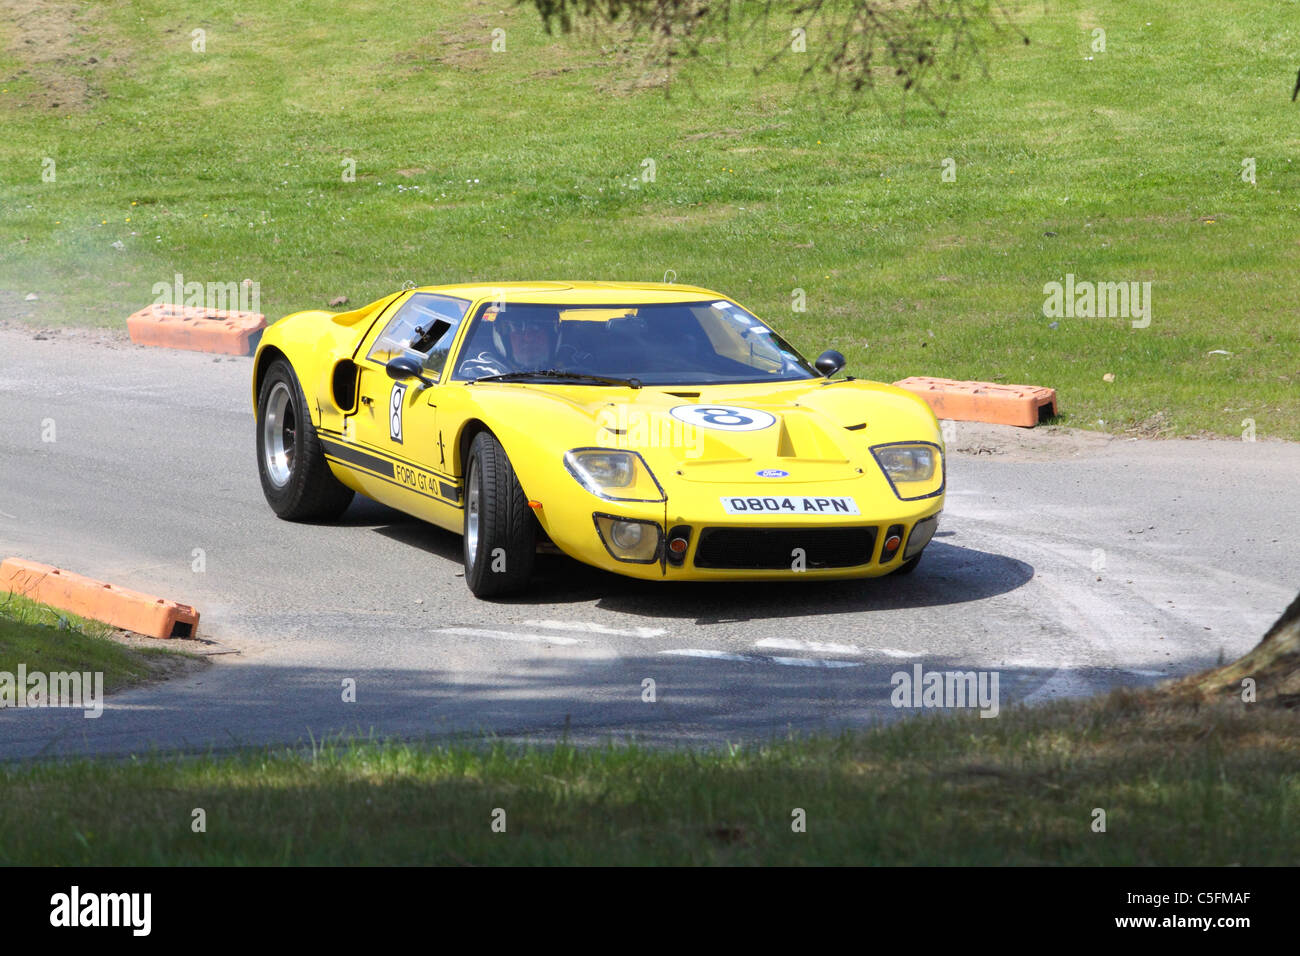 Ford Gt Replica At The Cultra Hillclimb Northern Ireland Stock Image